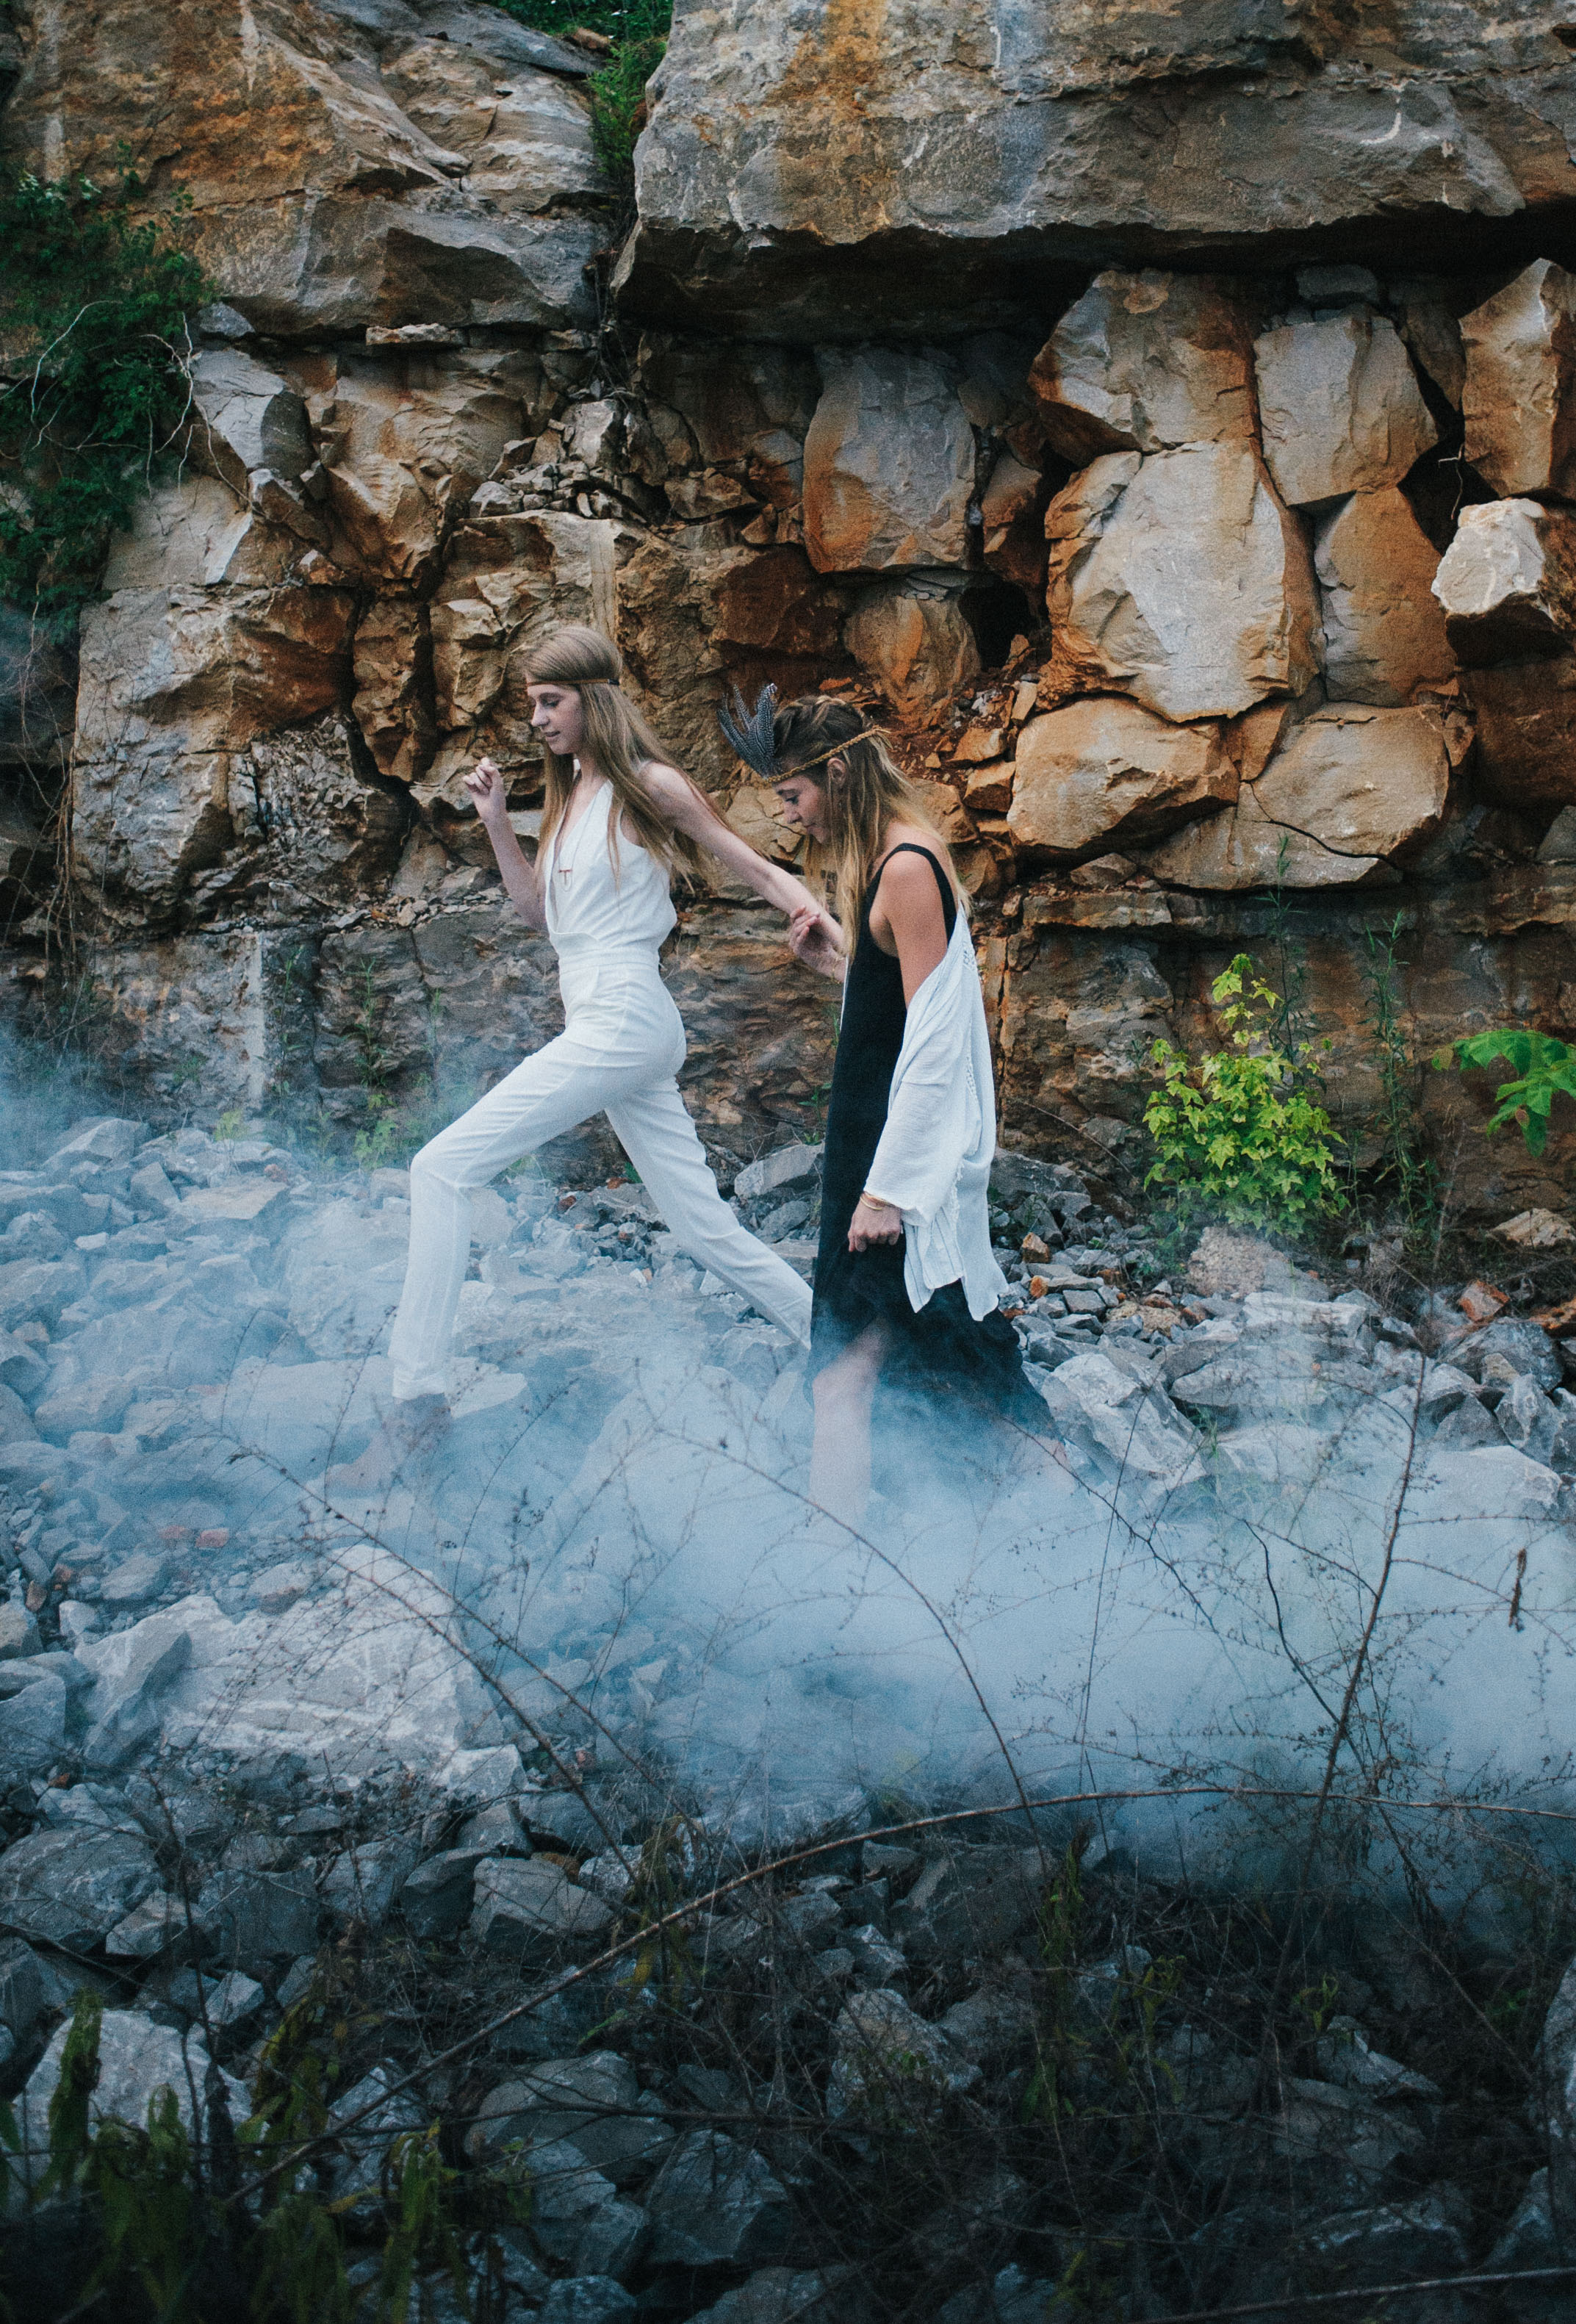 savannah-photographer-simon-and-ruby-desert-sunset-collection-hazel-and-scout-styling-sisters-of-nature-boutique-in-nashville-tennessee-onyx-model-management-in-huntsville-alabama-meghan-newsom-photographer-photos-of-the-desert.jpg